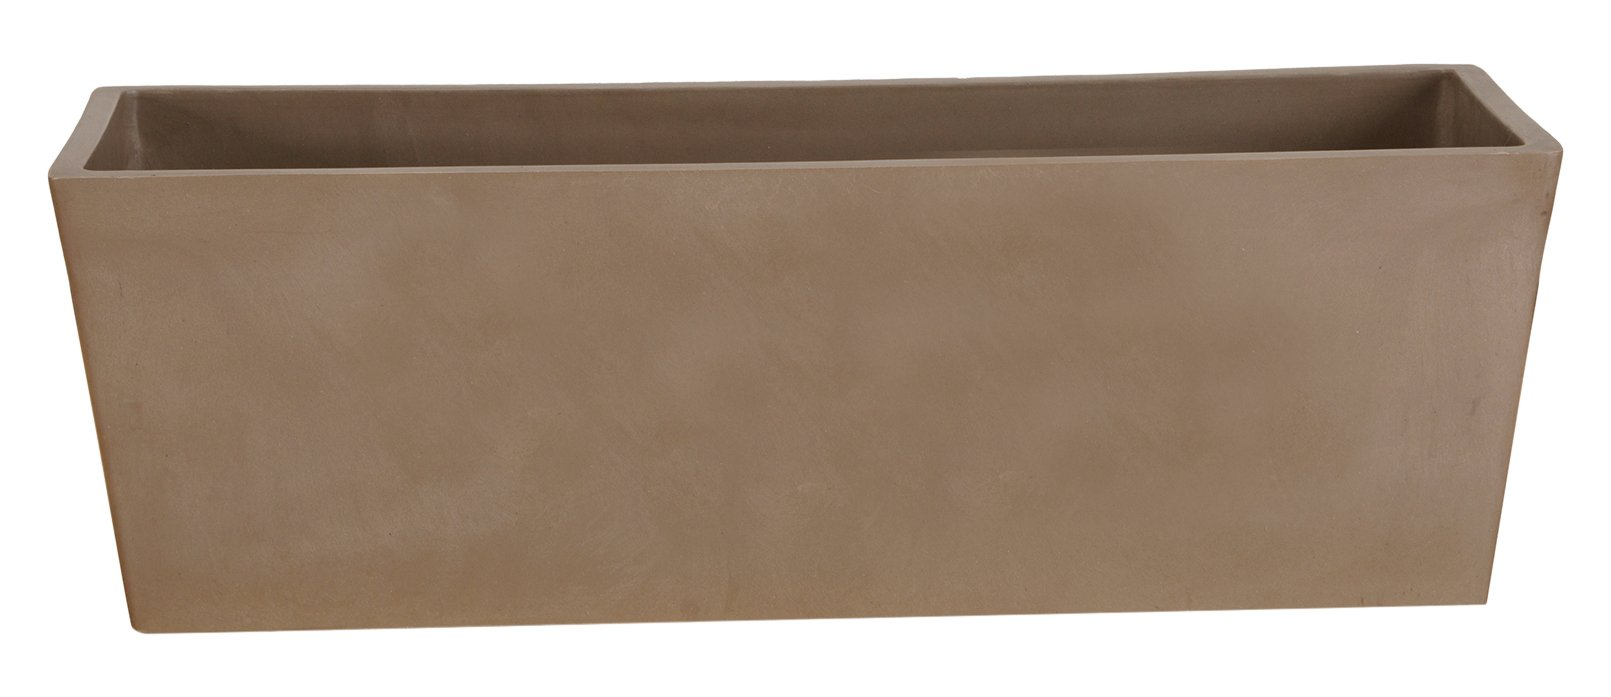 Arcadia Garden Products PSW U45TP Simplicity Window Box, 17.5'' x 7'' x 6'', Taupe